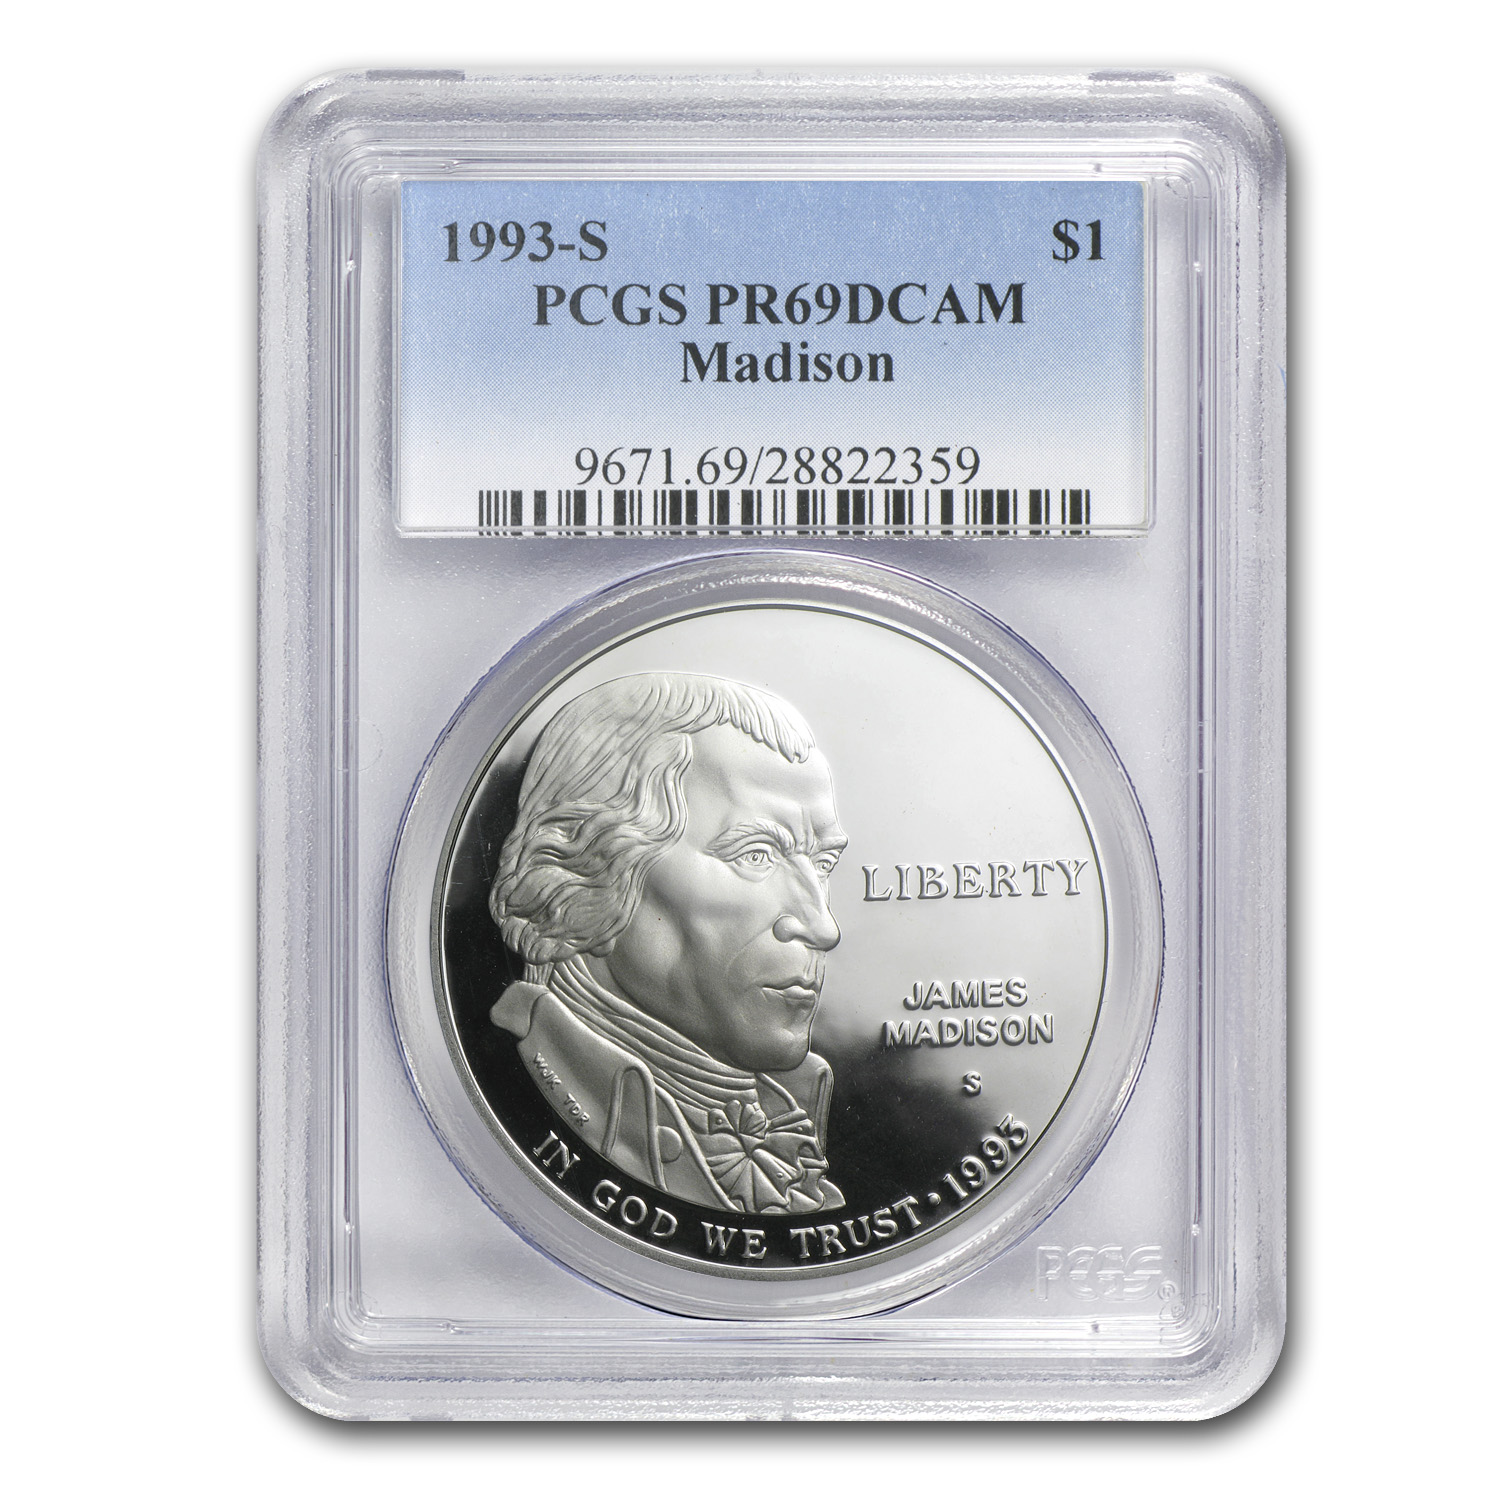 1993-S Bill of Rights $1 Silver Commemorative PR-69 PCGS